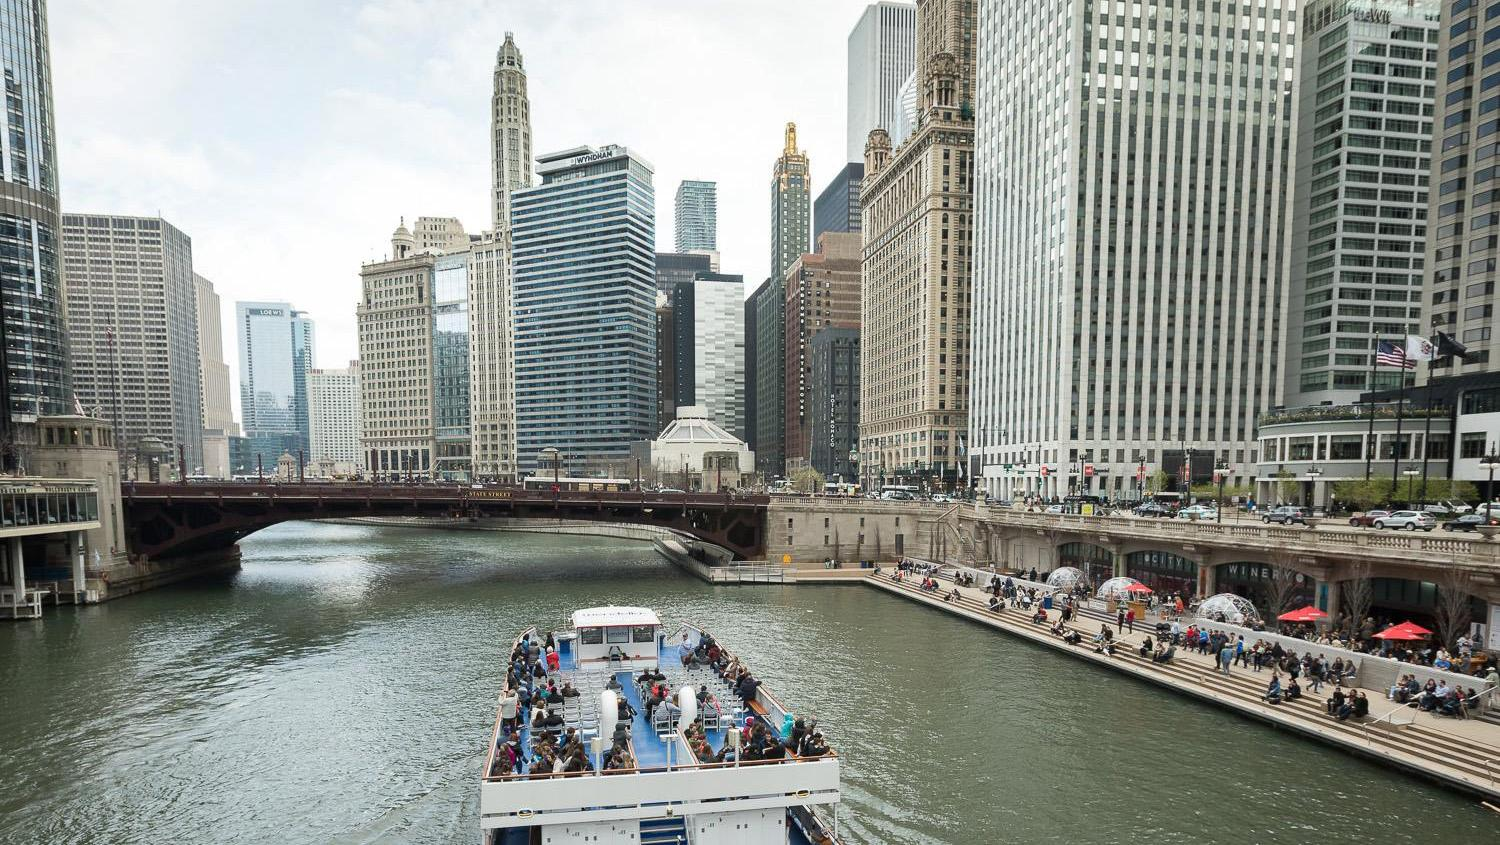 The Chicago Riverwalk kicks off the summer season with a day full of events and activities. (City Winery Chicago Riverwalk / Facebook)